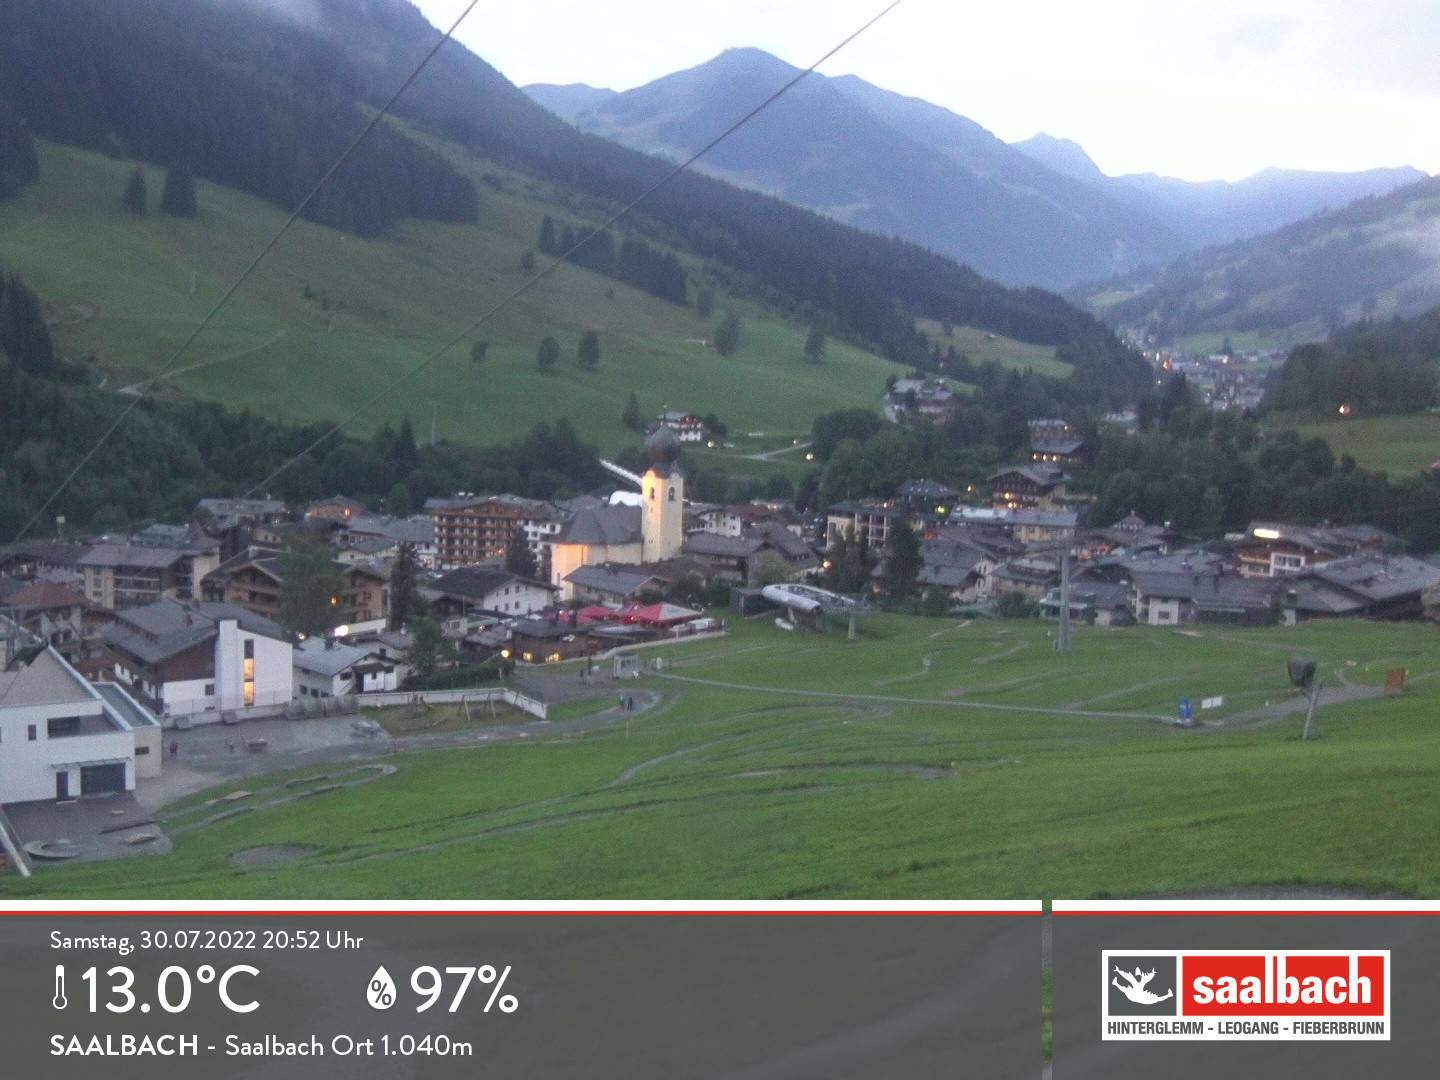 Webcam <br><span>Webcam Saalbach Hinterglemm</span>